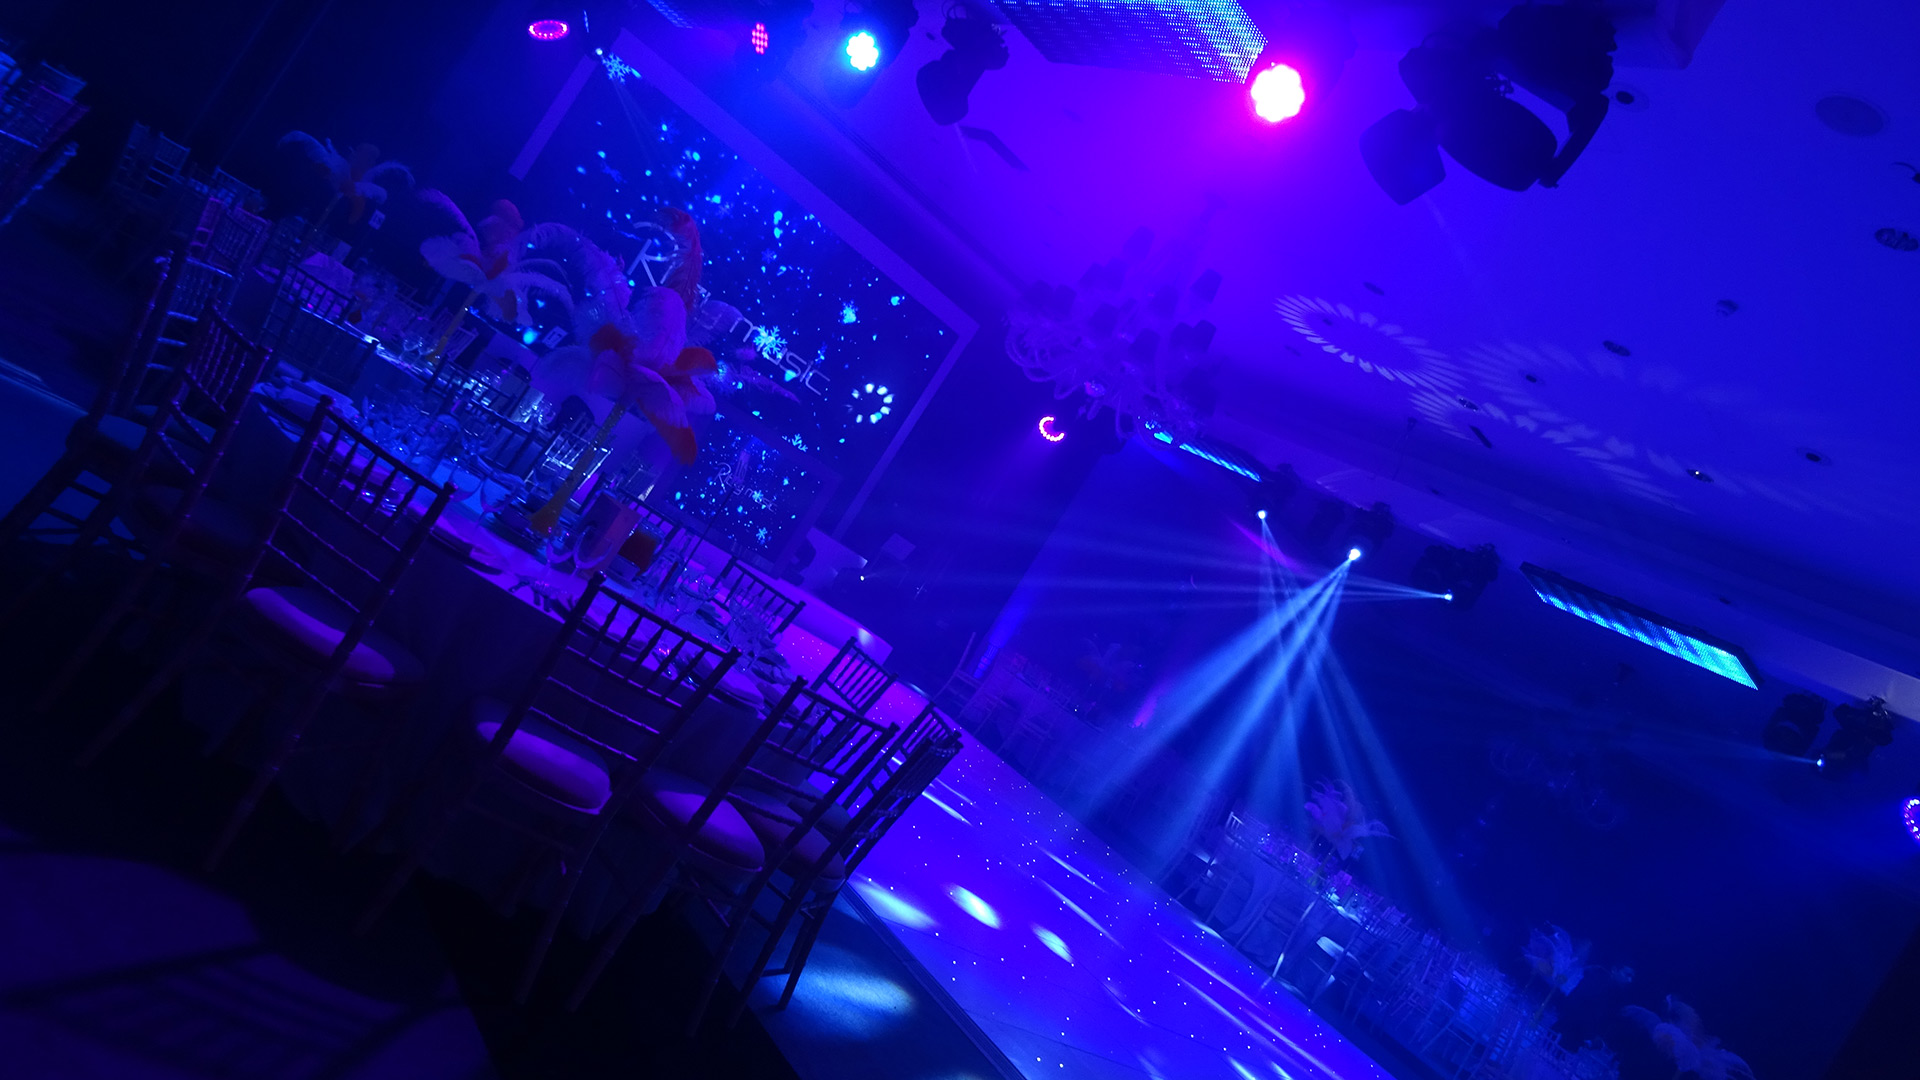 Ritzy_Music_Lighting1